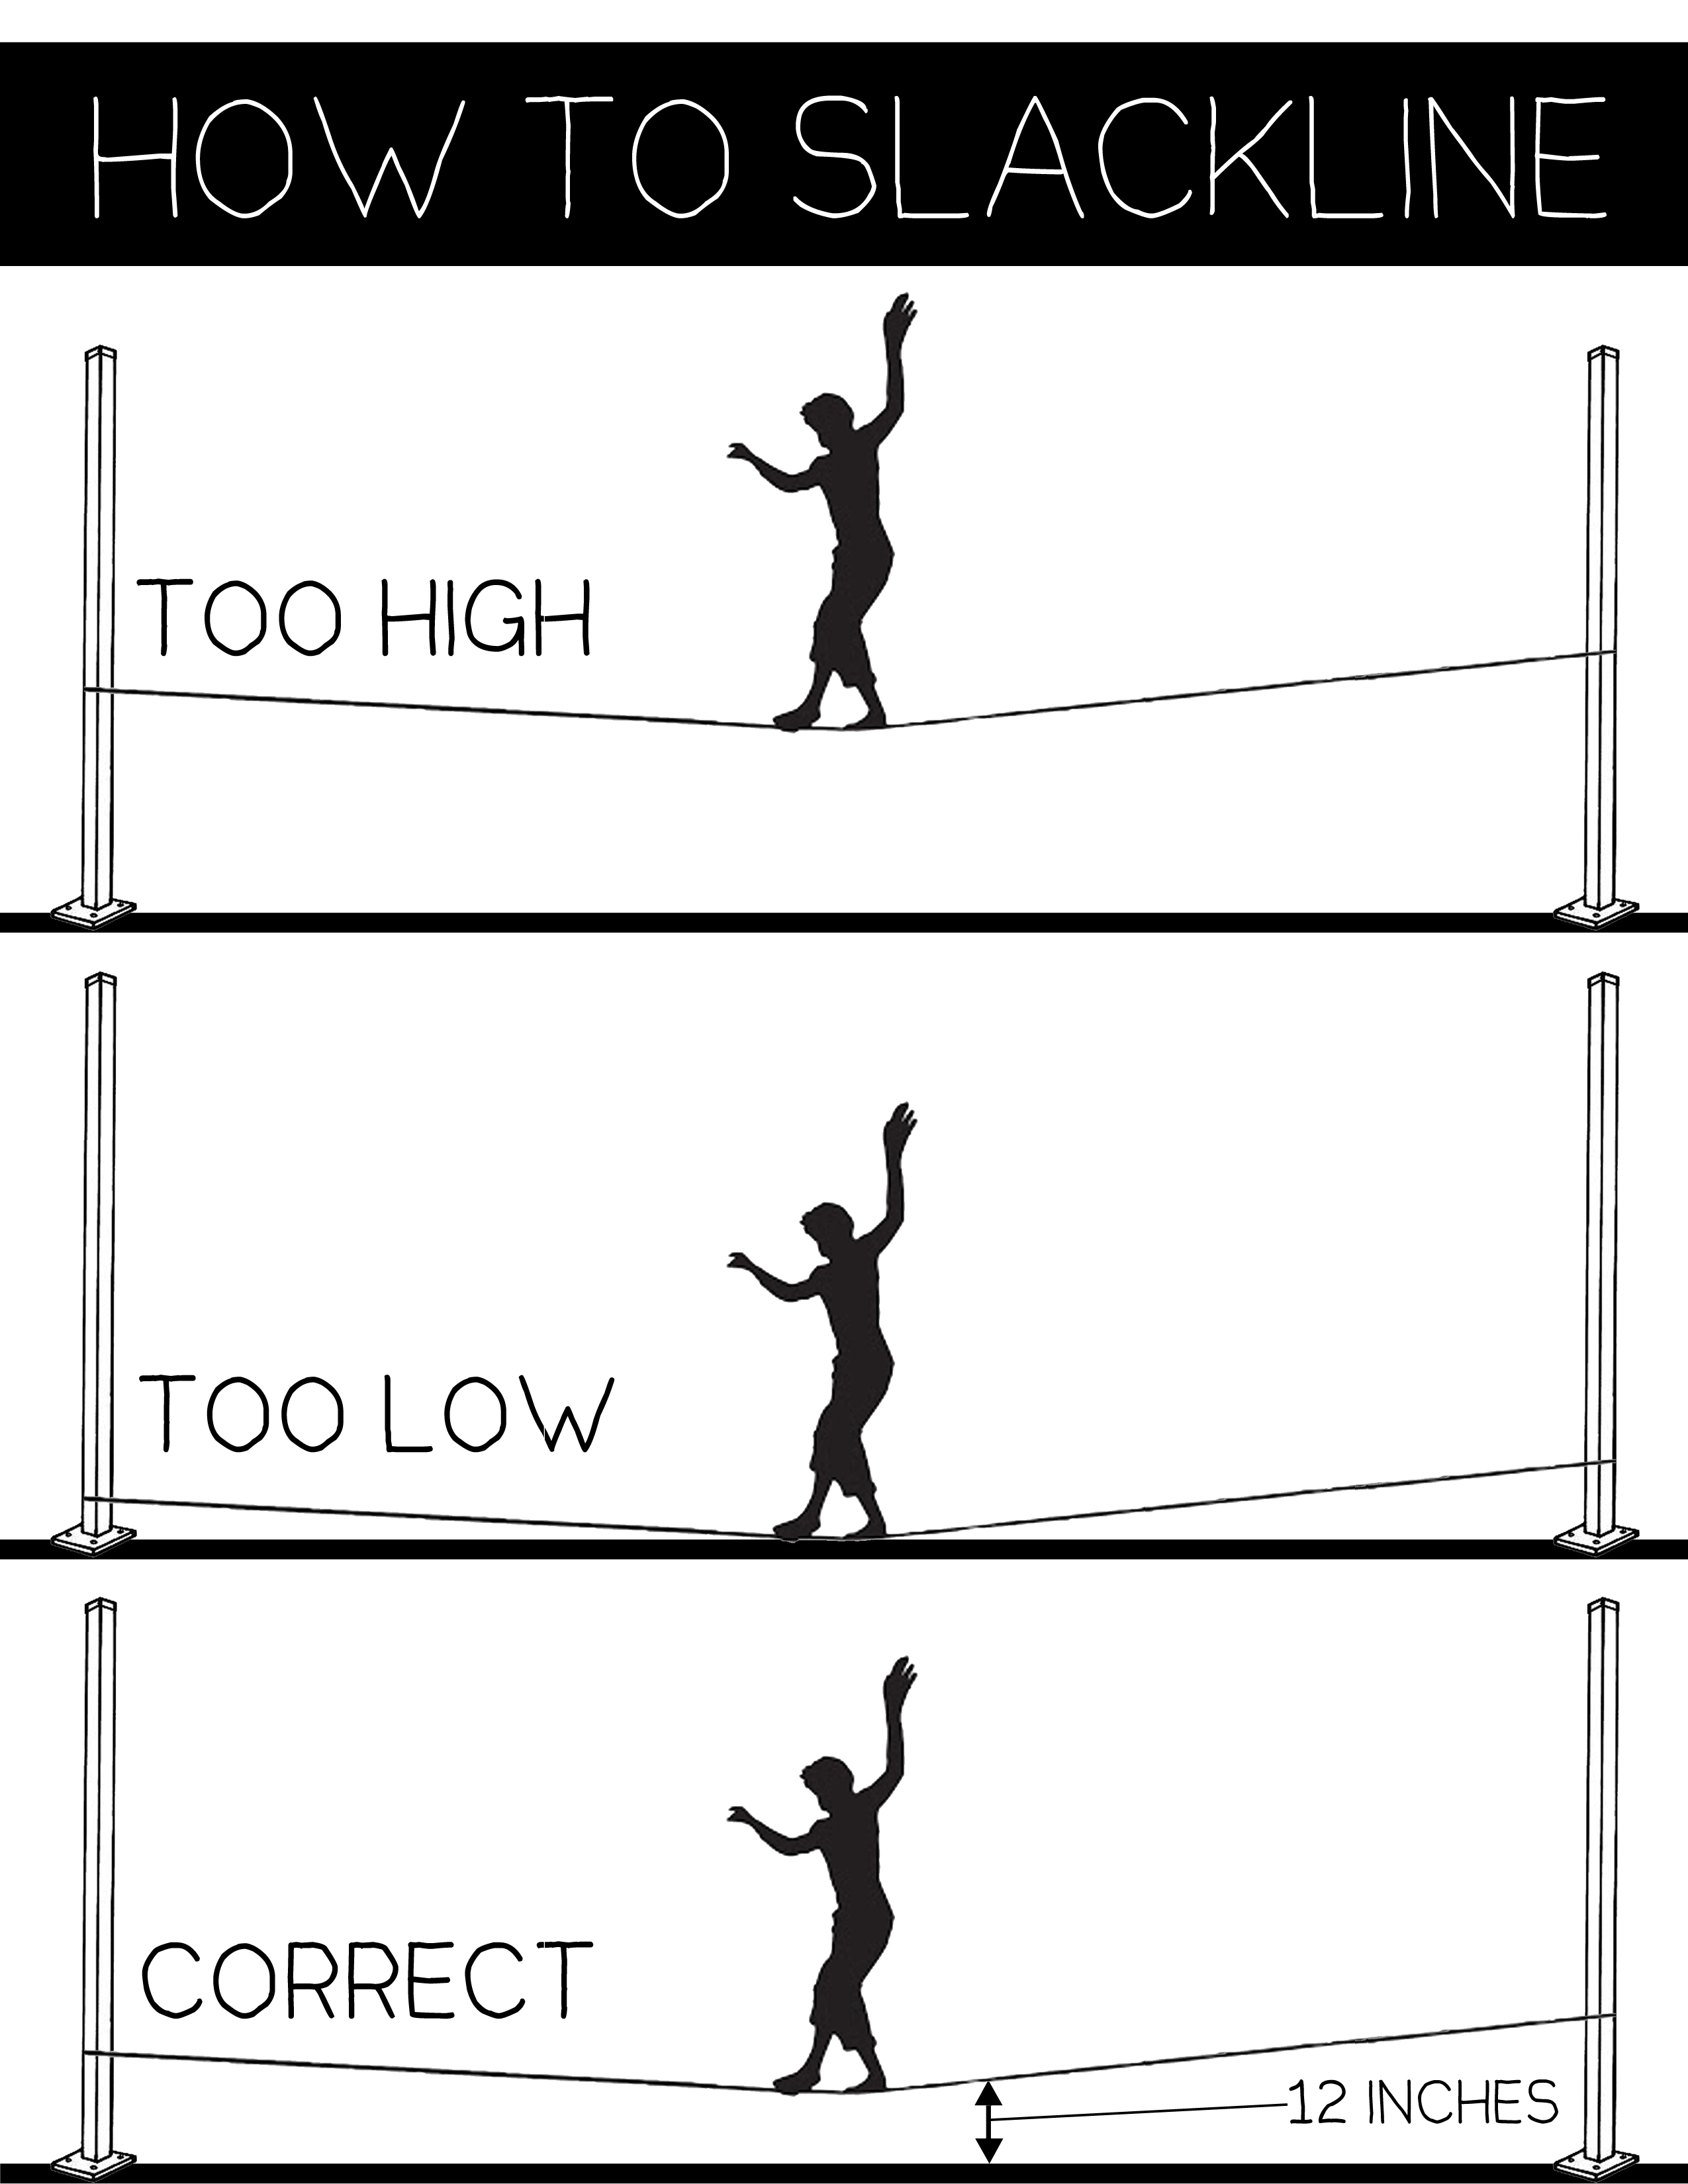 How to Slackline Graphic